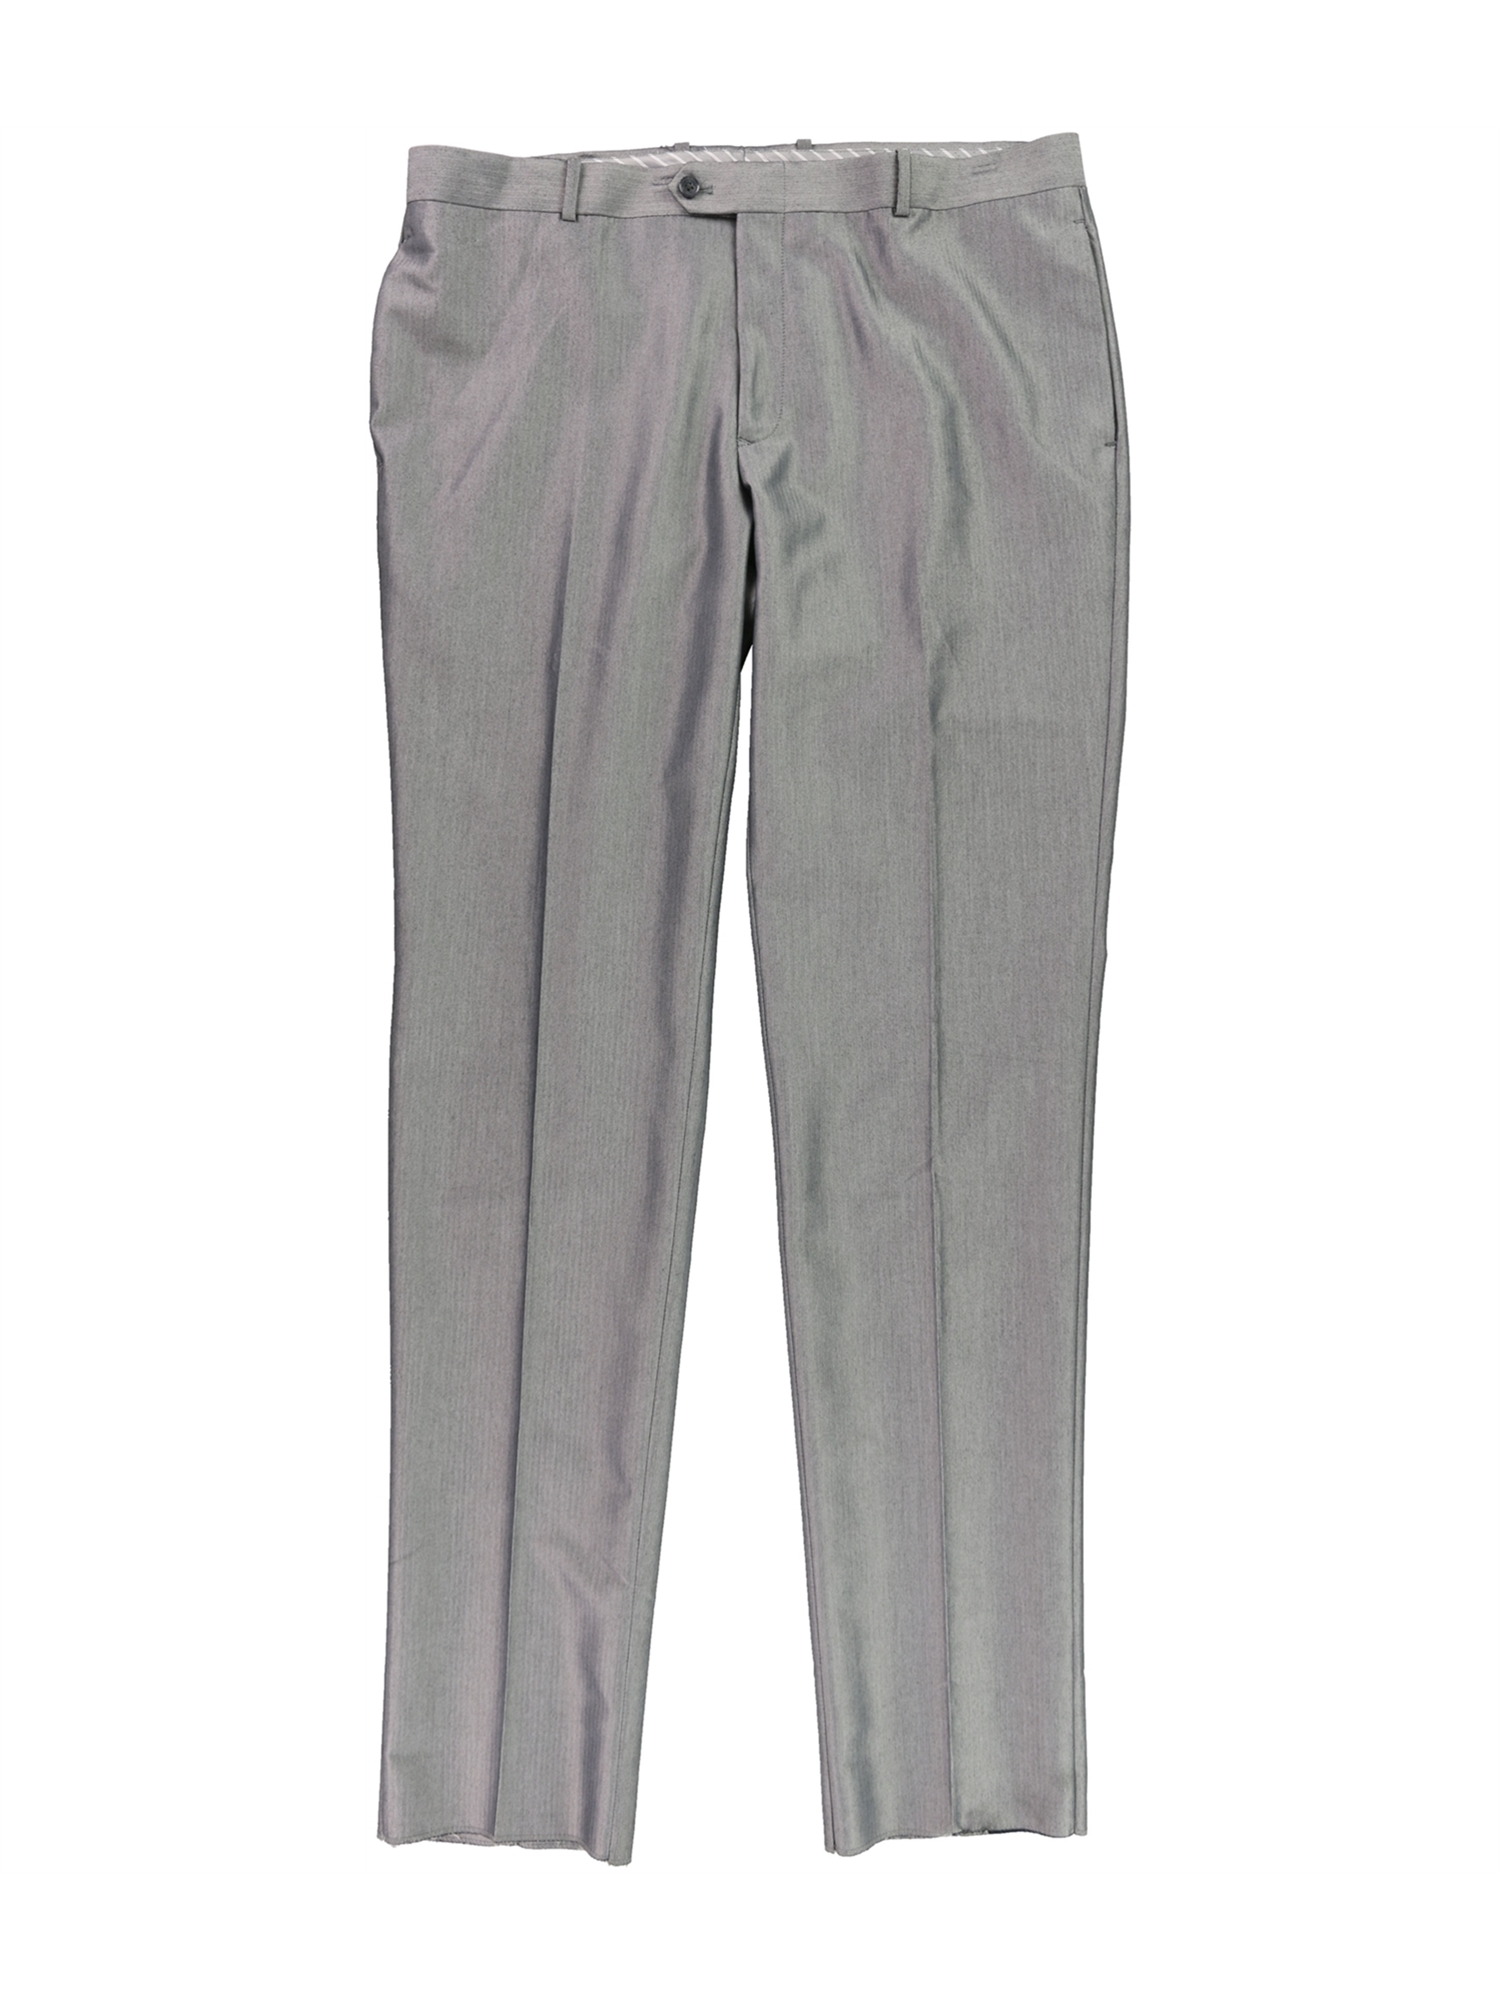 bar III Mens Slim Fit heather Dress Slacks lightgrey 39/Unfinished